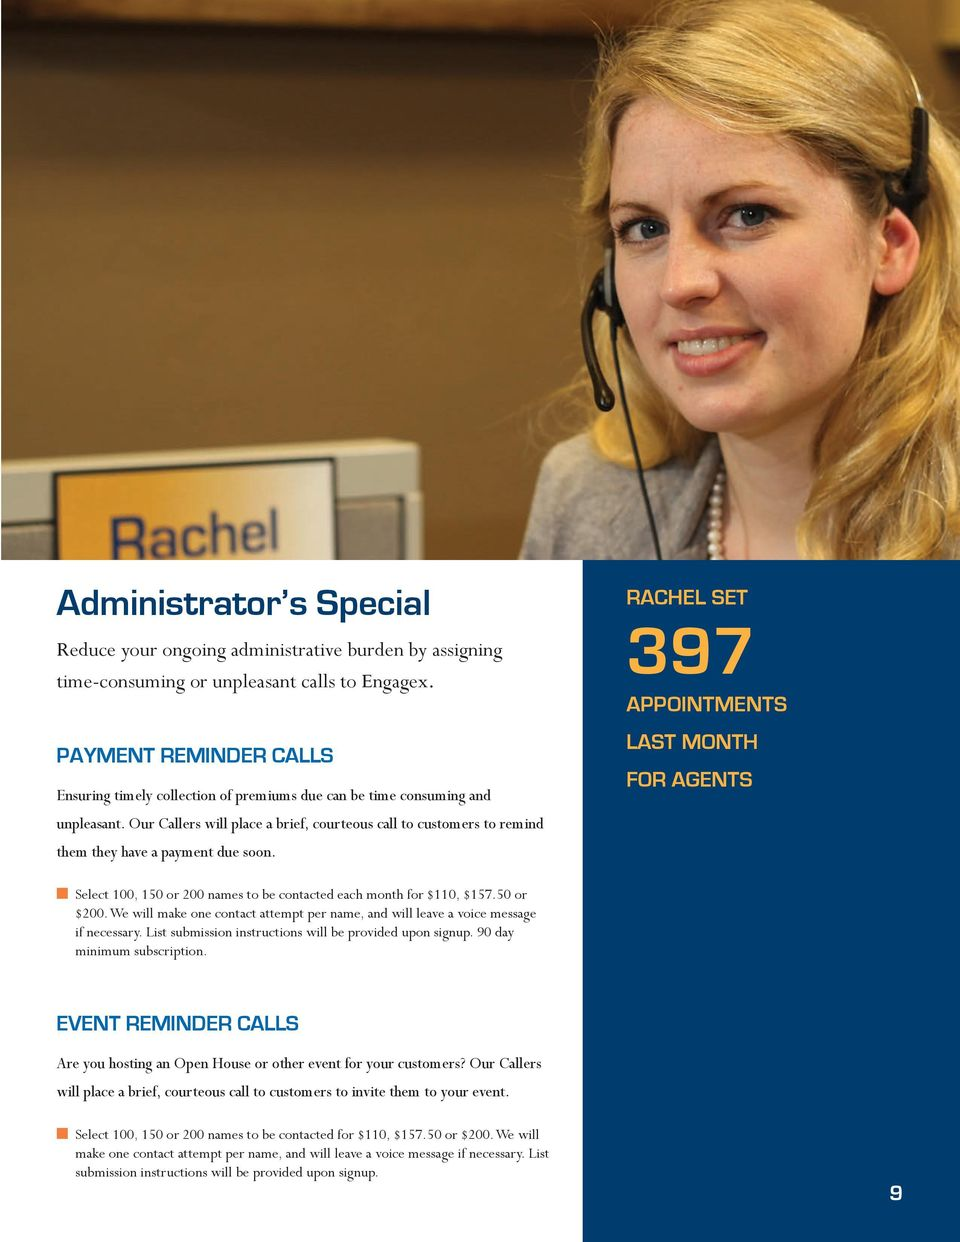 RACHEL SET 397 APPOINTMENTS LAST MONTH FOR AGENTS Select 100, 150 or 200 ames to be cotacted each moth for $110, $157.50 or $200.